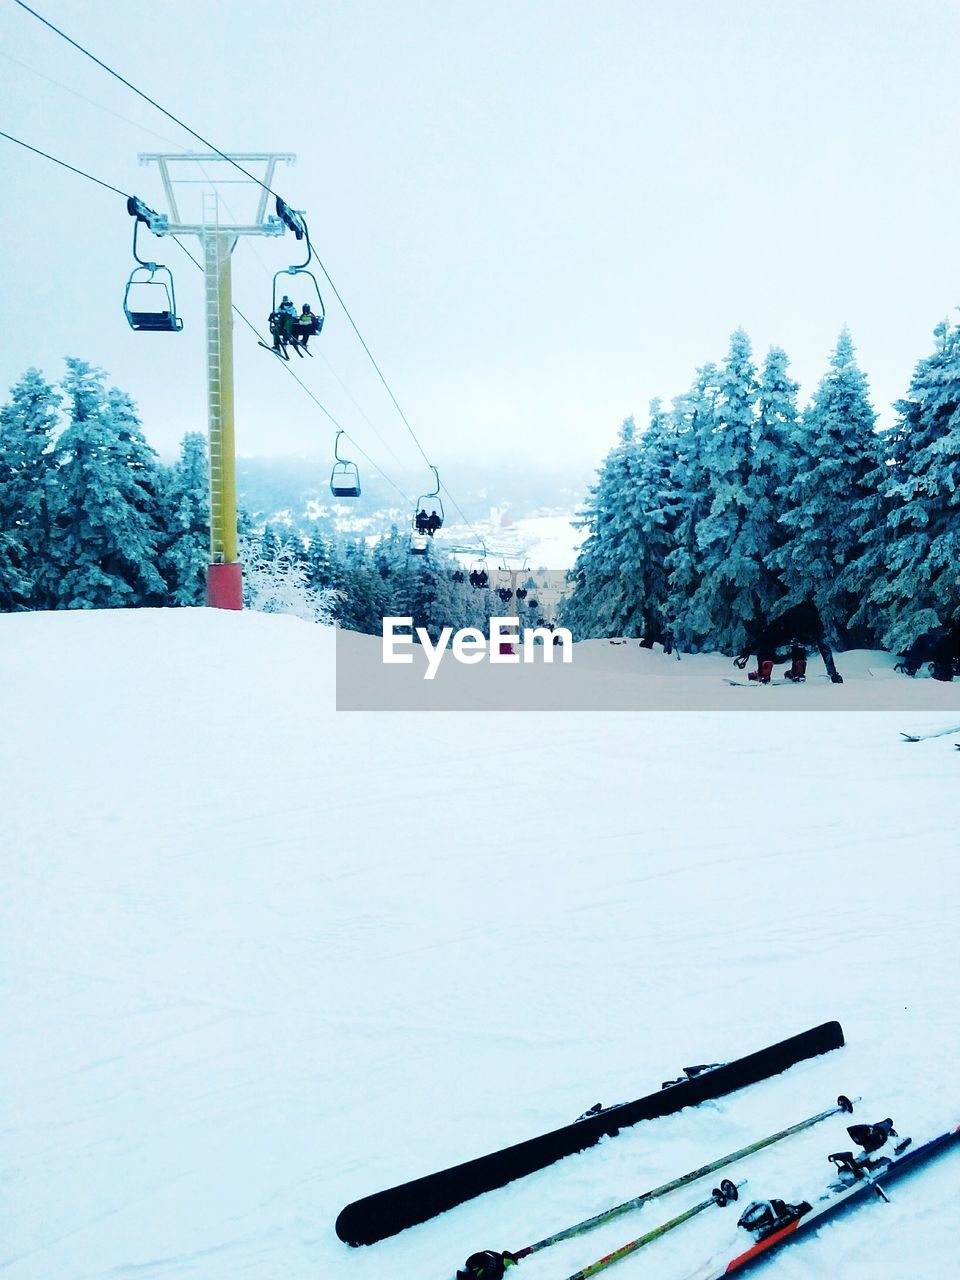 snow, winter, cold temperature, nature, weather, day, field, outdoors, tree, sky, skiing, ski lift, clear sky, ski holiday, beauty in nature, frozen, scenics, overhead cable car, real people, adventure, landscape, large group of people, mountain, warm clothing, people